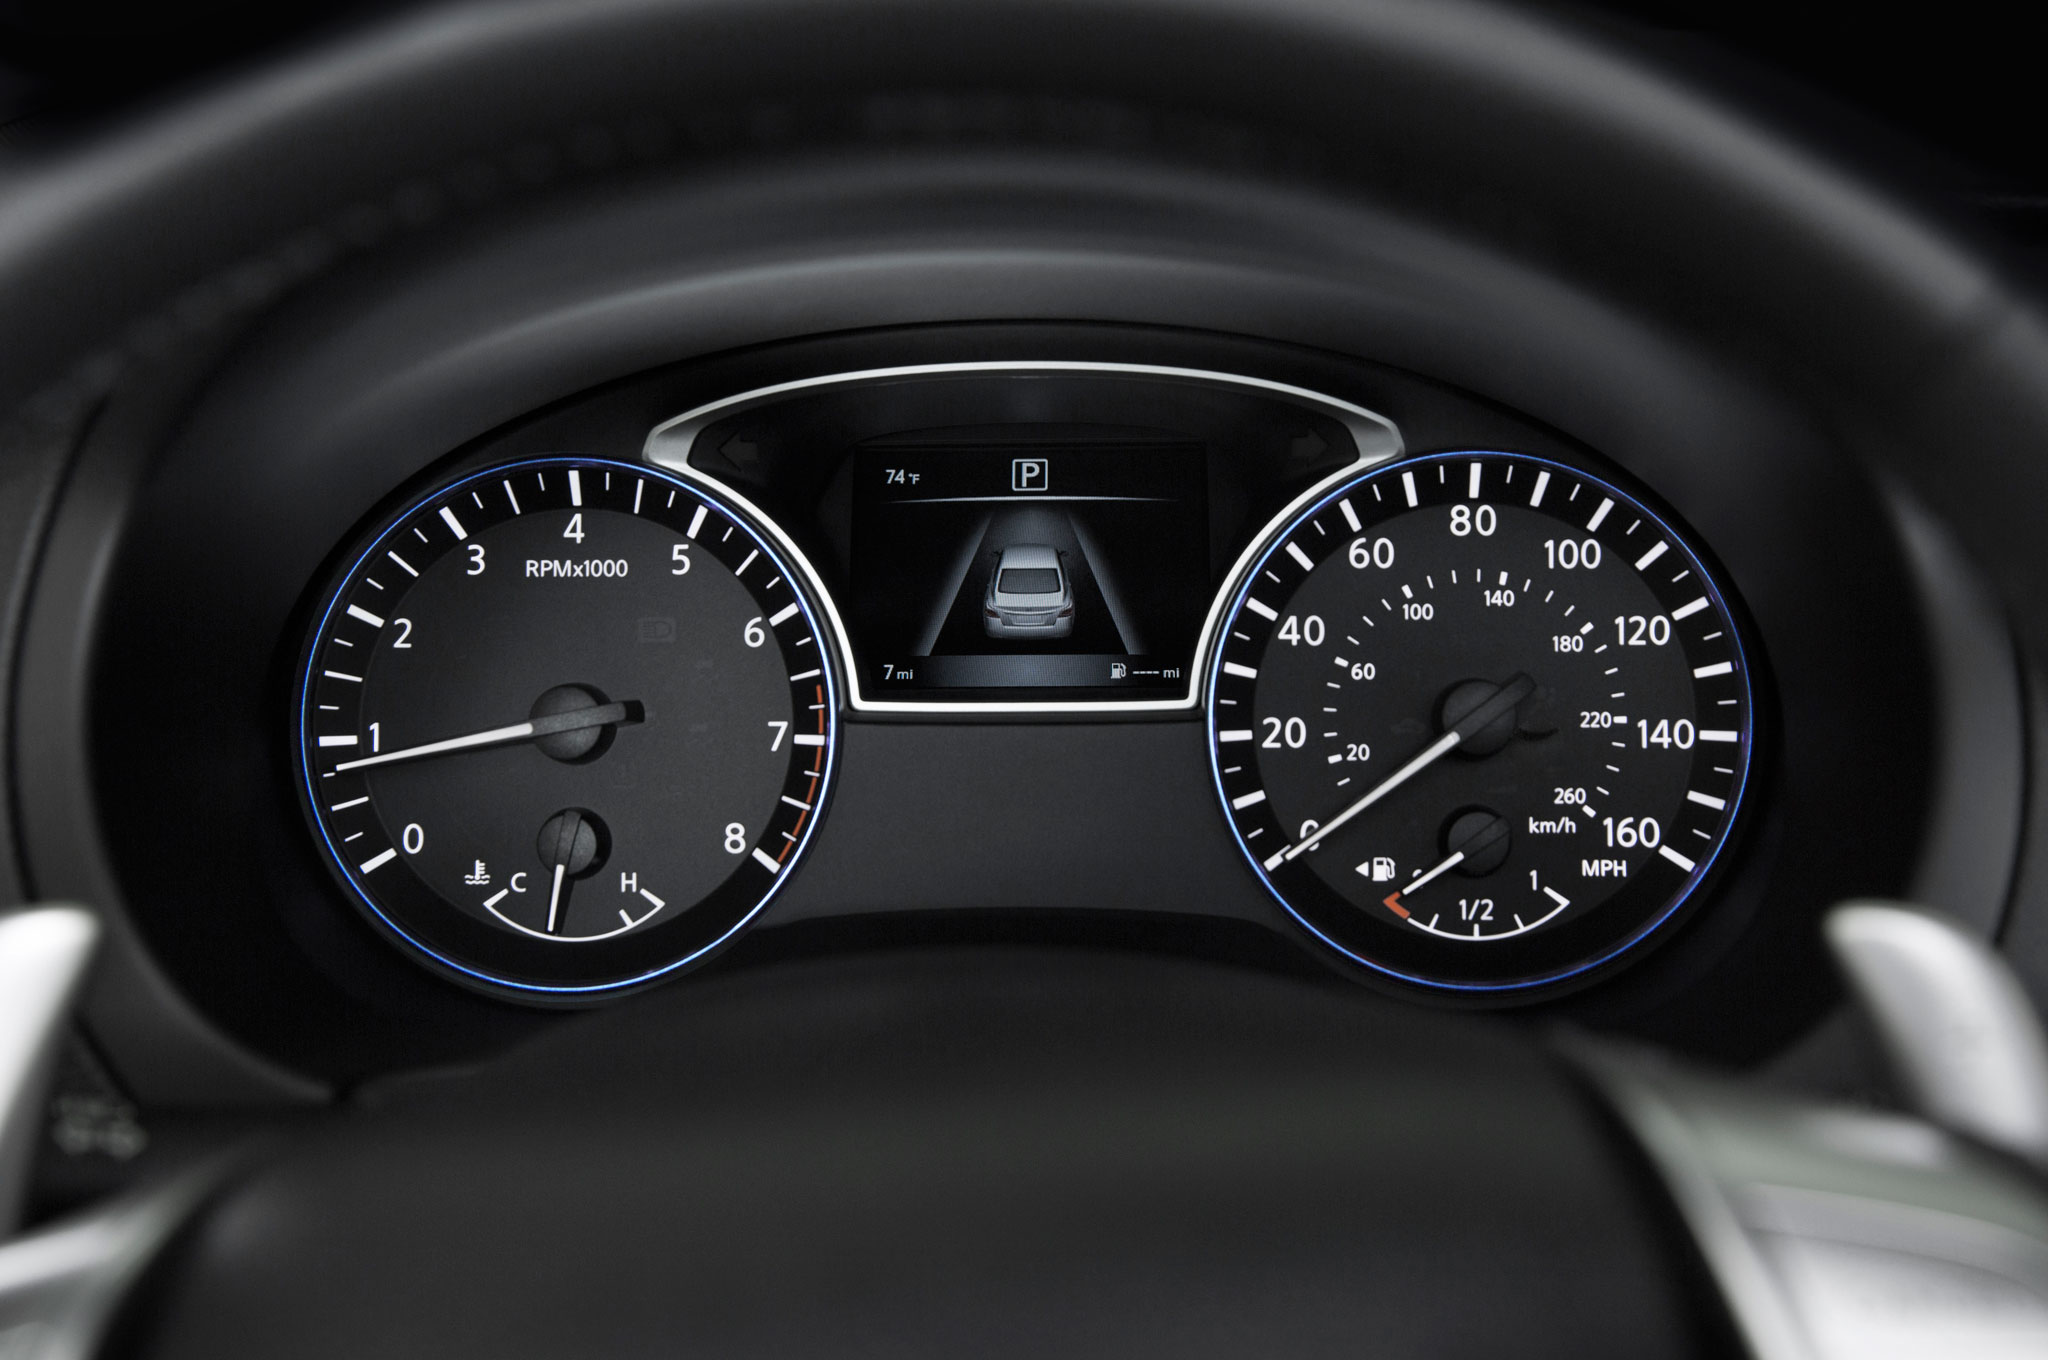 2016 Nissan Altima Sr Interior Instrument Cluster And